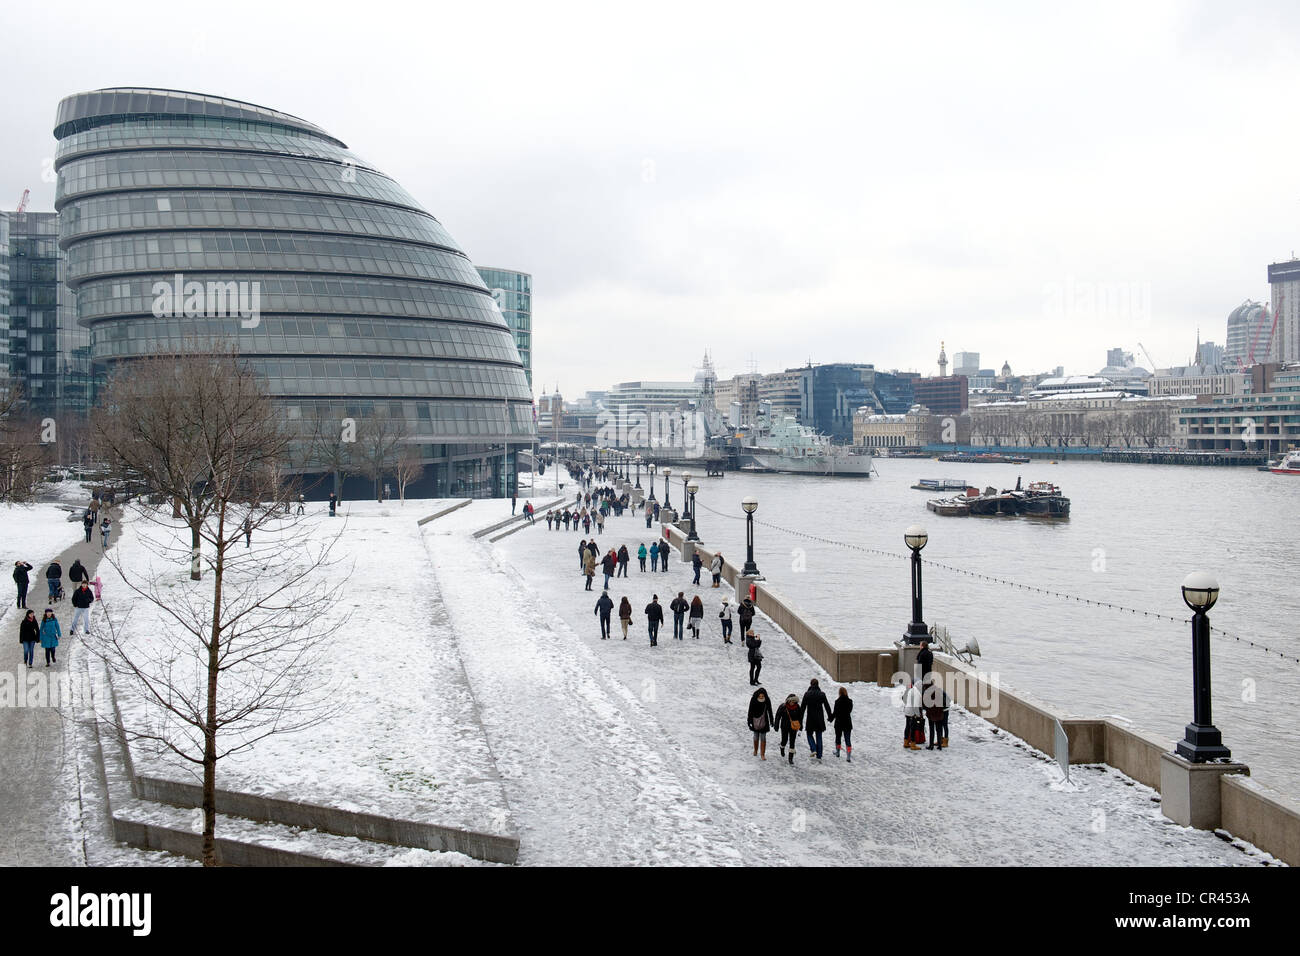 City Hall On The River Thames In The Winter Snow London